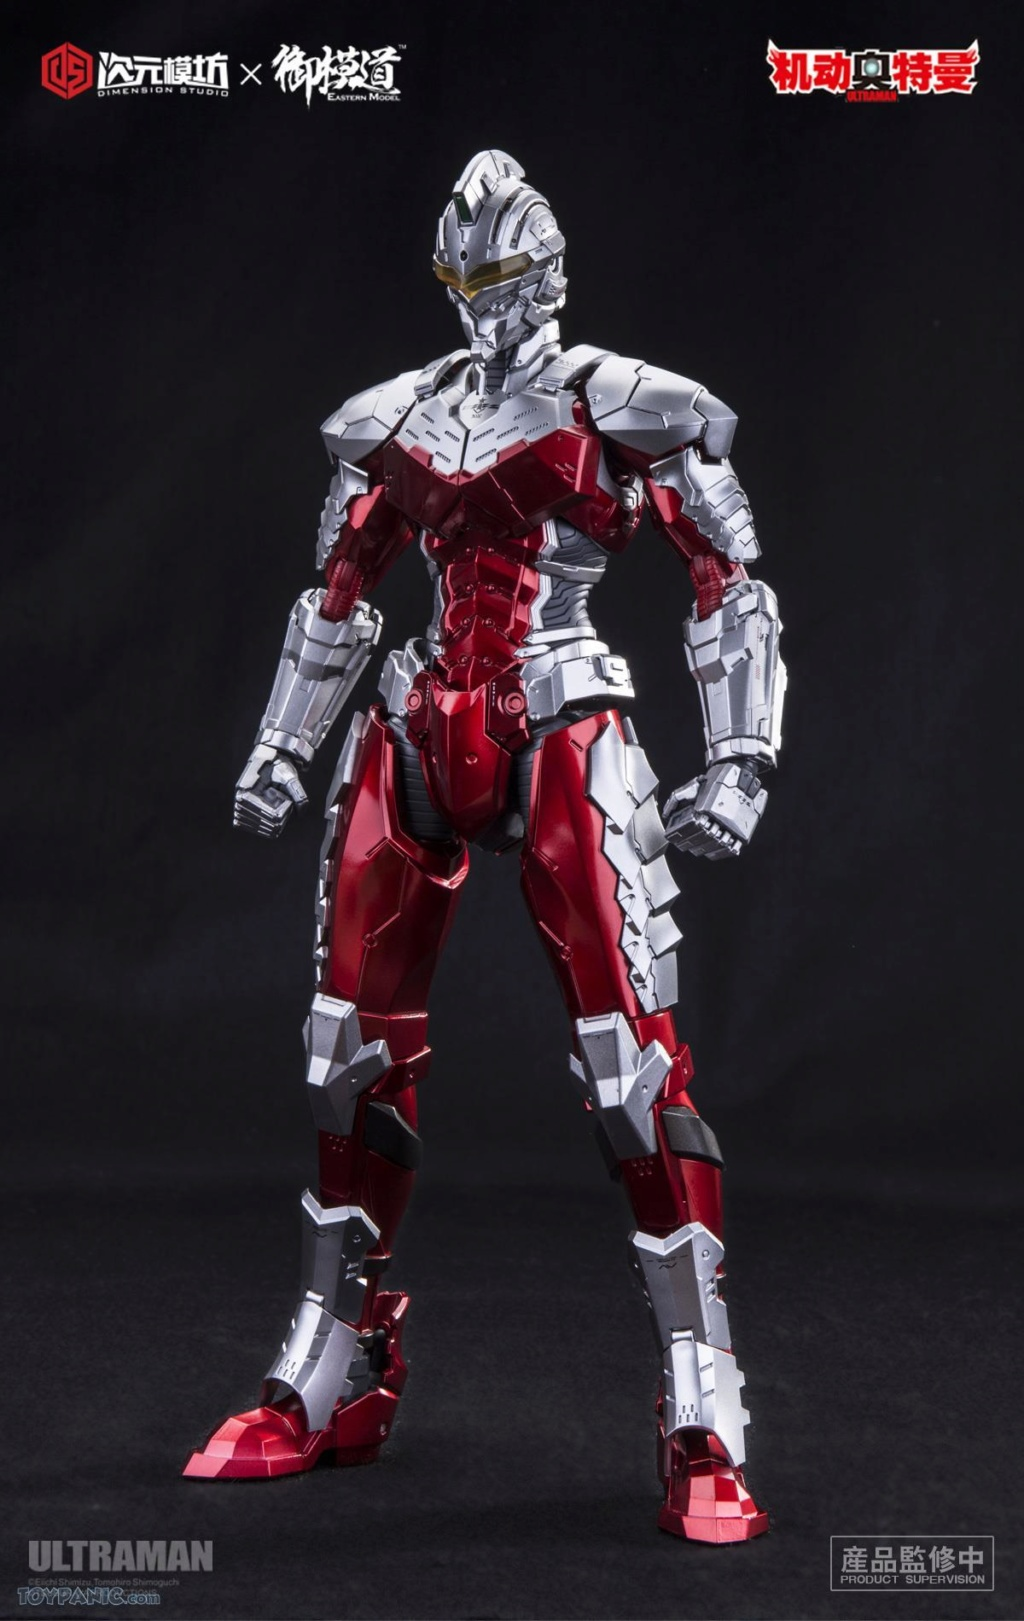 Ultraman - NEW PRODUCT: Dimension Studio X Model Principle: 1/6 Ultra Seven Suit Ver. 7.0 Action Figure  15201911